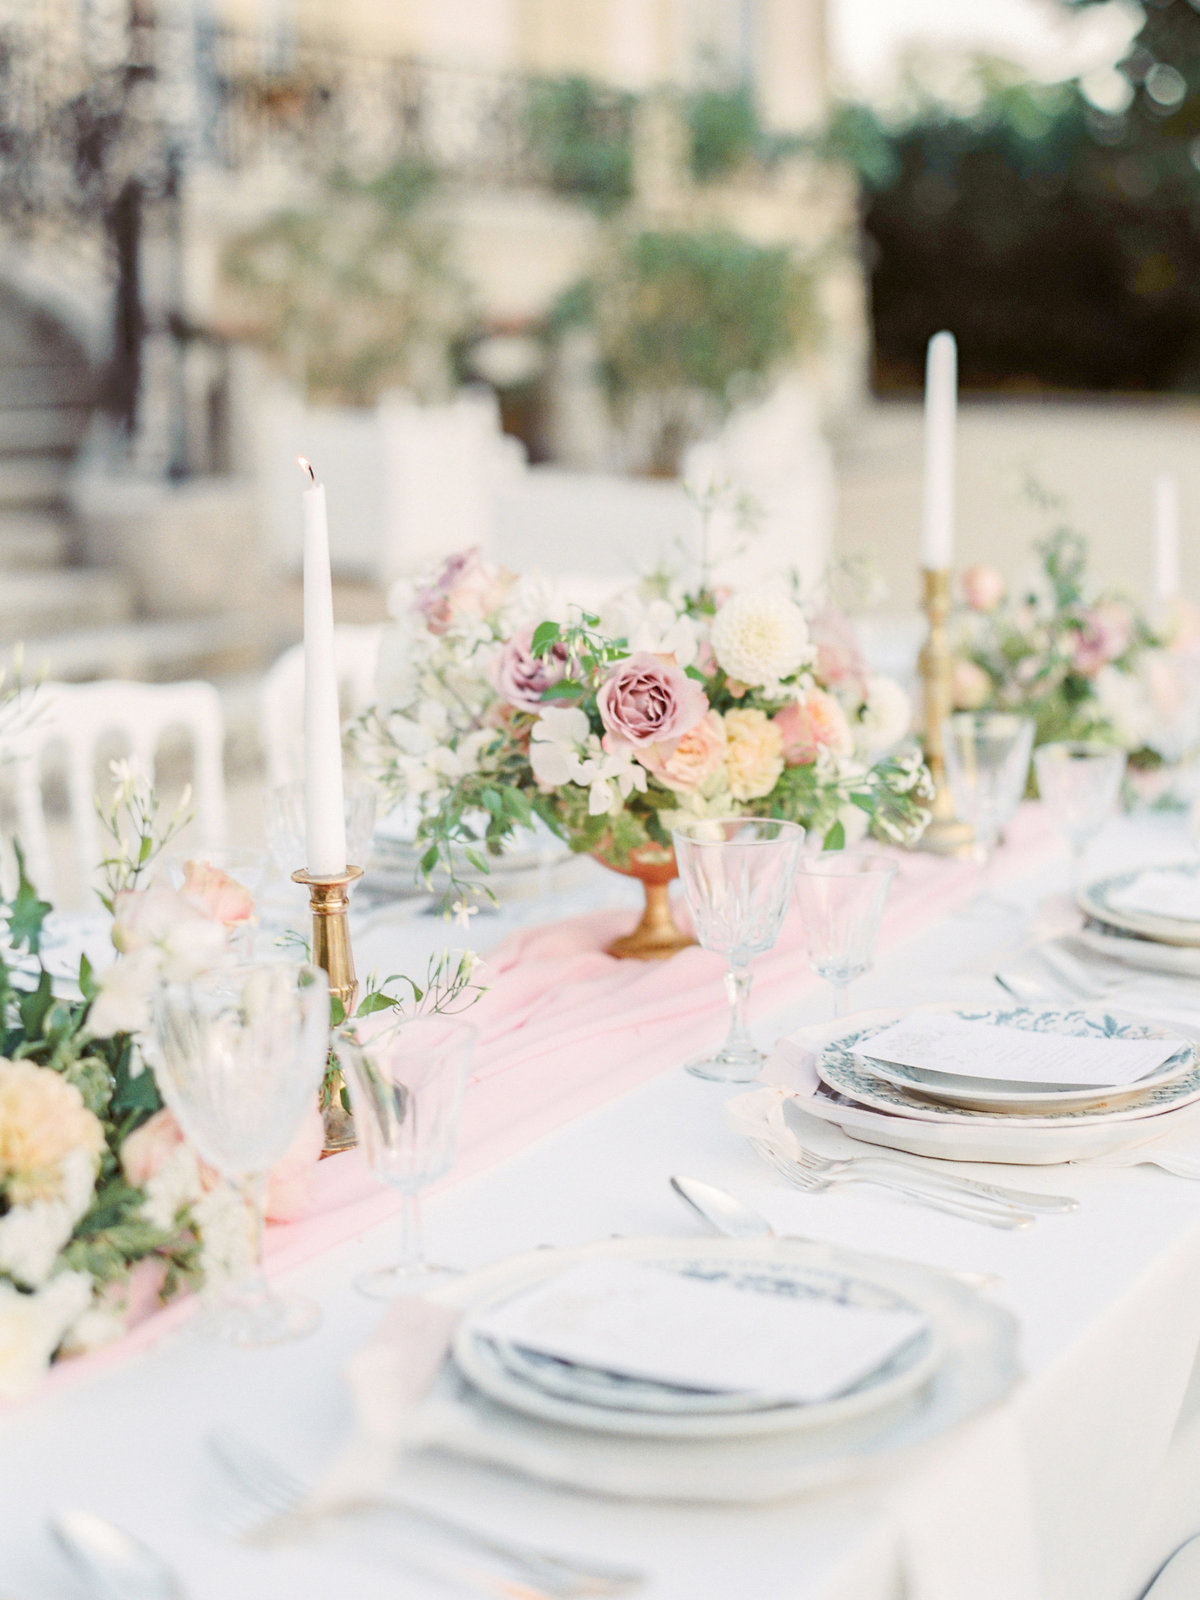 Luxurious french chateau wedding amelia soegijono0035